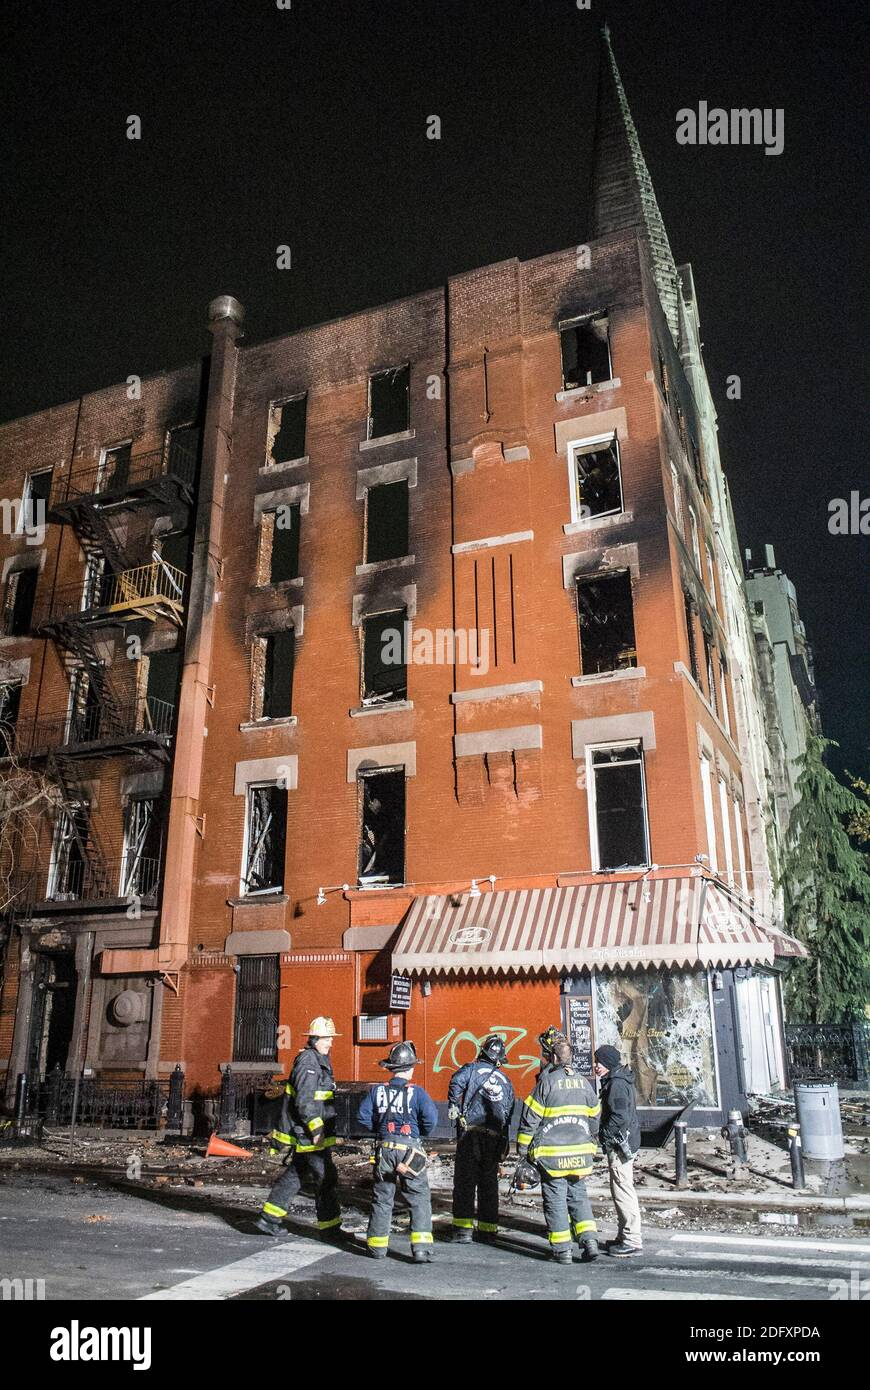 December 5, 2020, New York City, New York, U.S: Massive Fire Devastates Historic Church In East Village. The six-alarm fire started in a vacant building at East Seventh Street and Second Avenue before spreading to Middle Collegiate Church. The fire, which broke out just before 5 a.m. in a vacant building, quickly spread to Middle Collegiate Church as well as another nearby building on East Seventh Street, FDNY Assistant Chief John Hodgens said Saturday morning. Built in 1892, the church is home to the oldest congregation of the Collegiate Churches of New York, which date to the Dutch settlemen Stock Photo